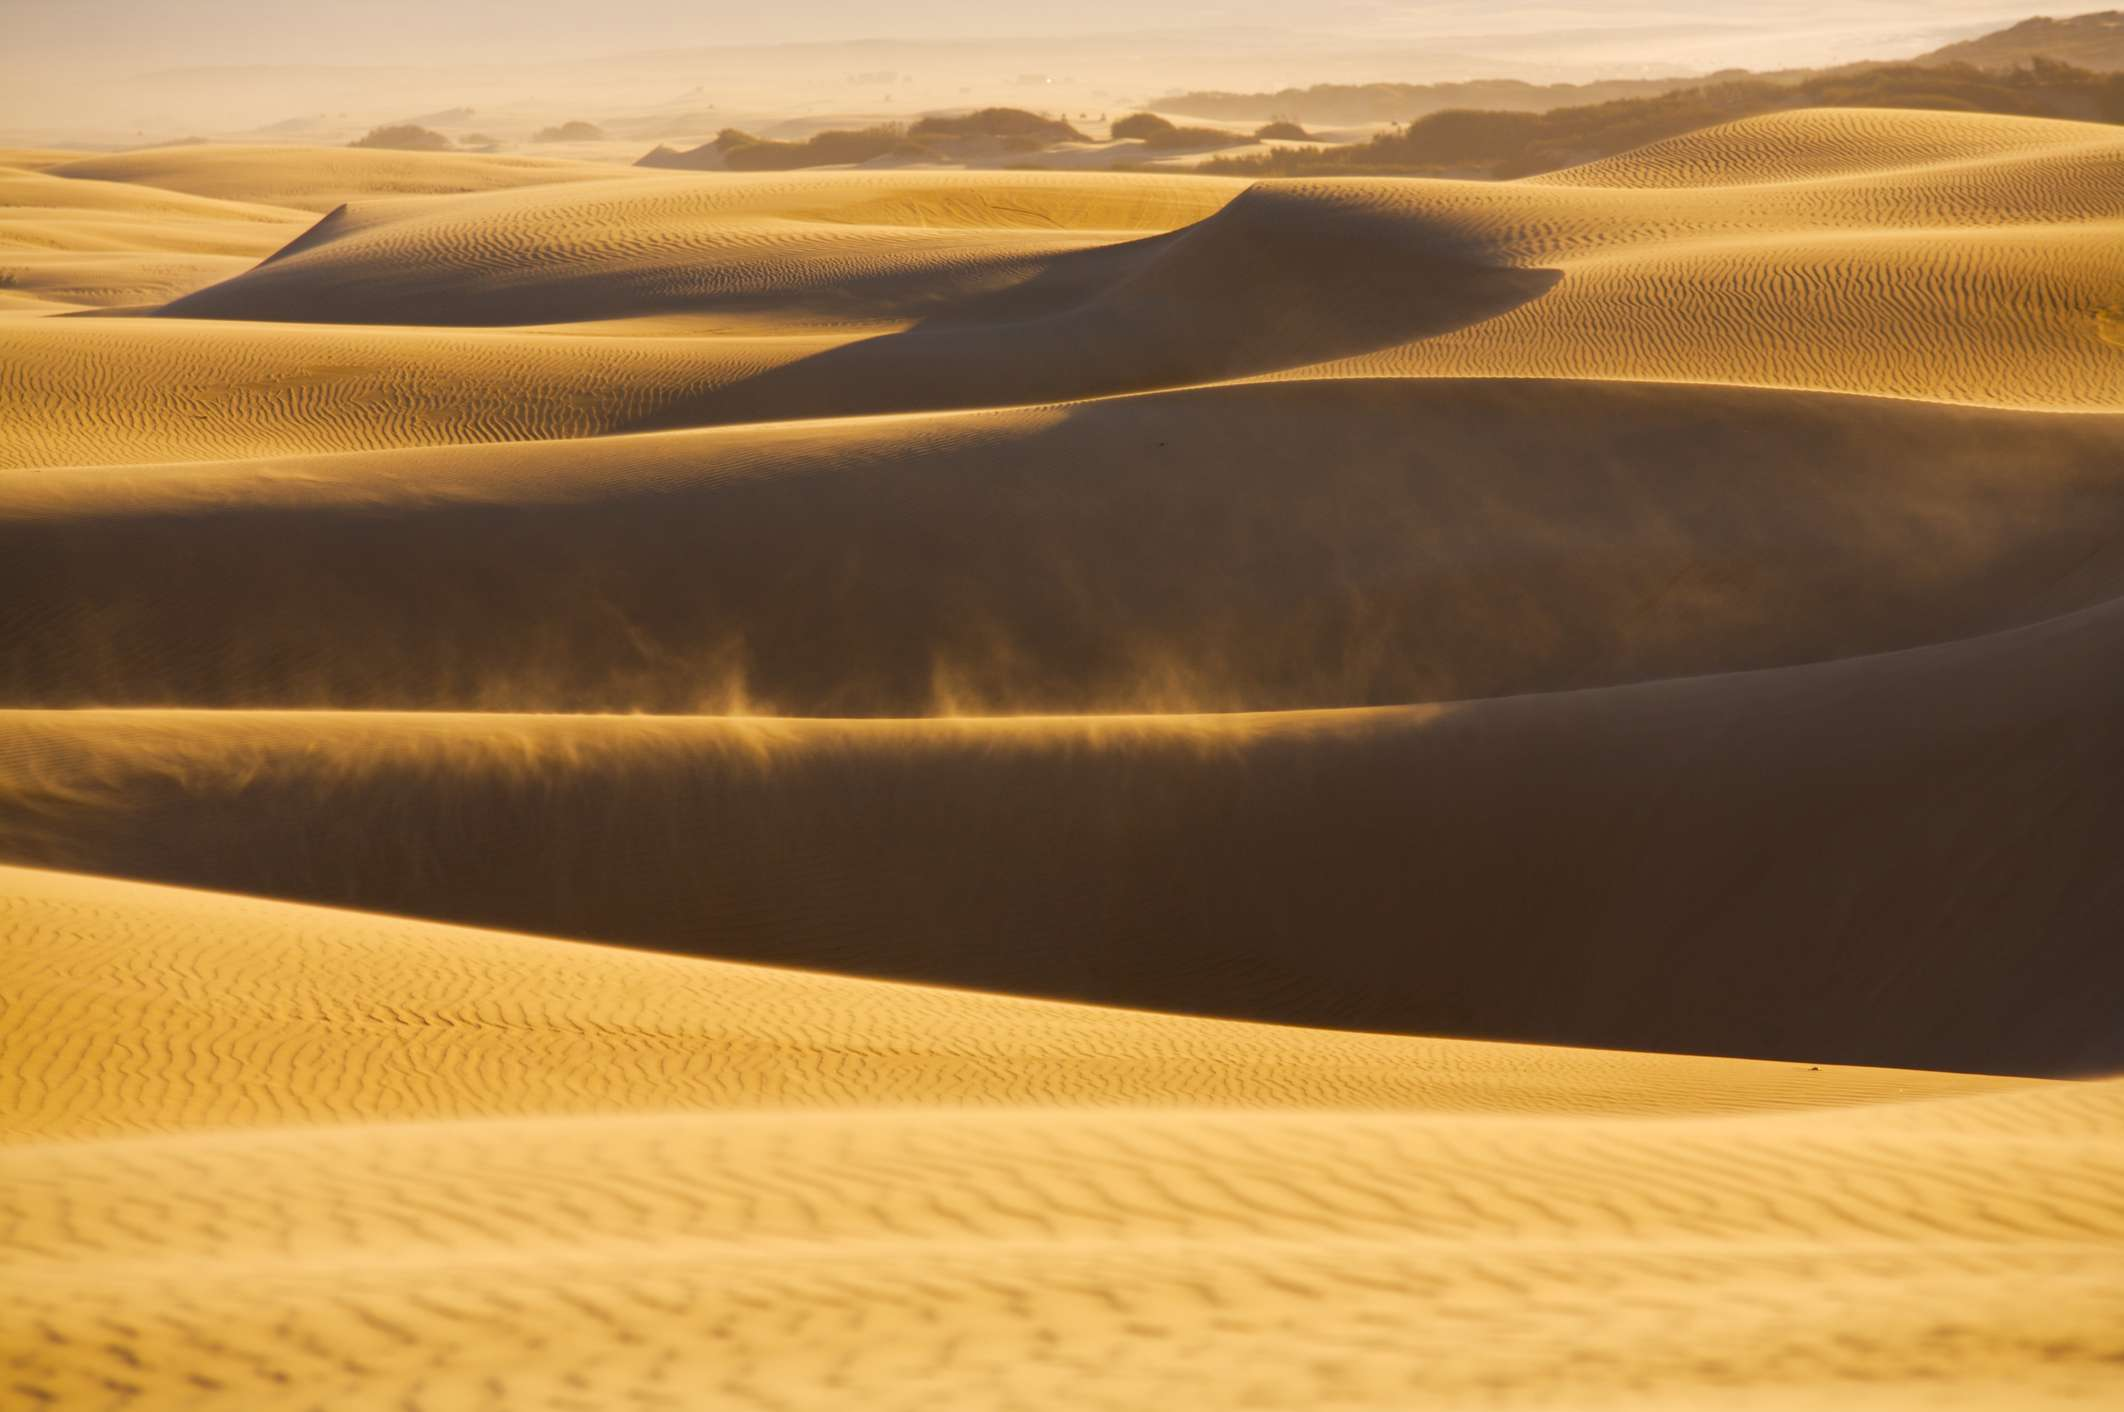 The sand dunes of SLO County